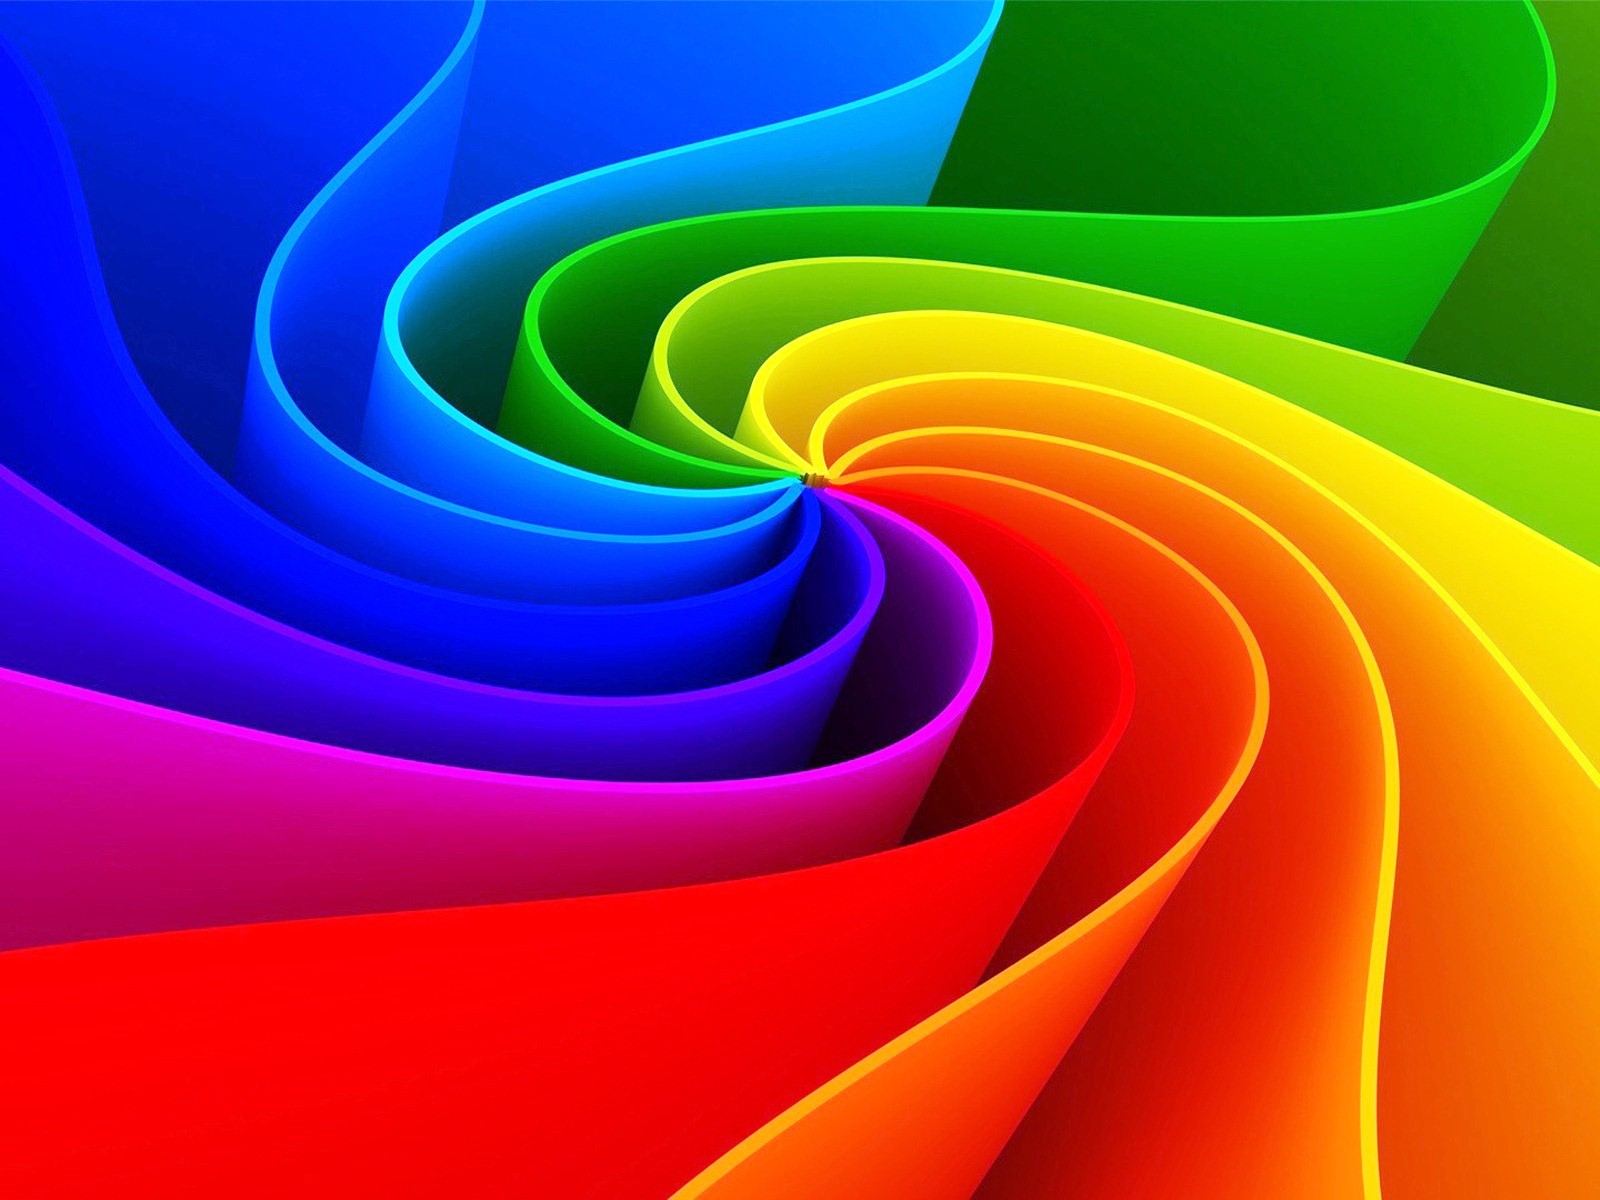 Download 3d Moving Wallpapers For Windows 7 White 3d Background Abstract Chatmasti99